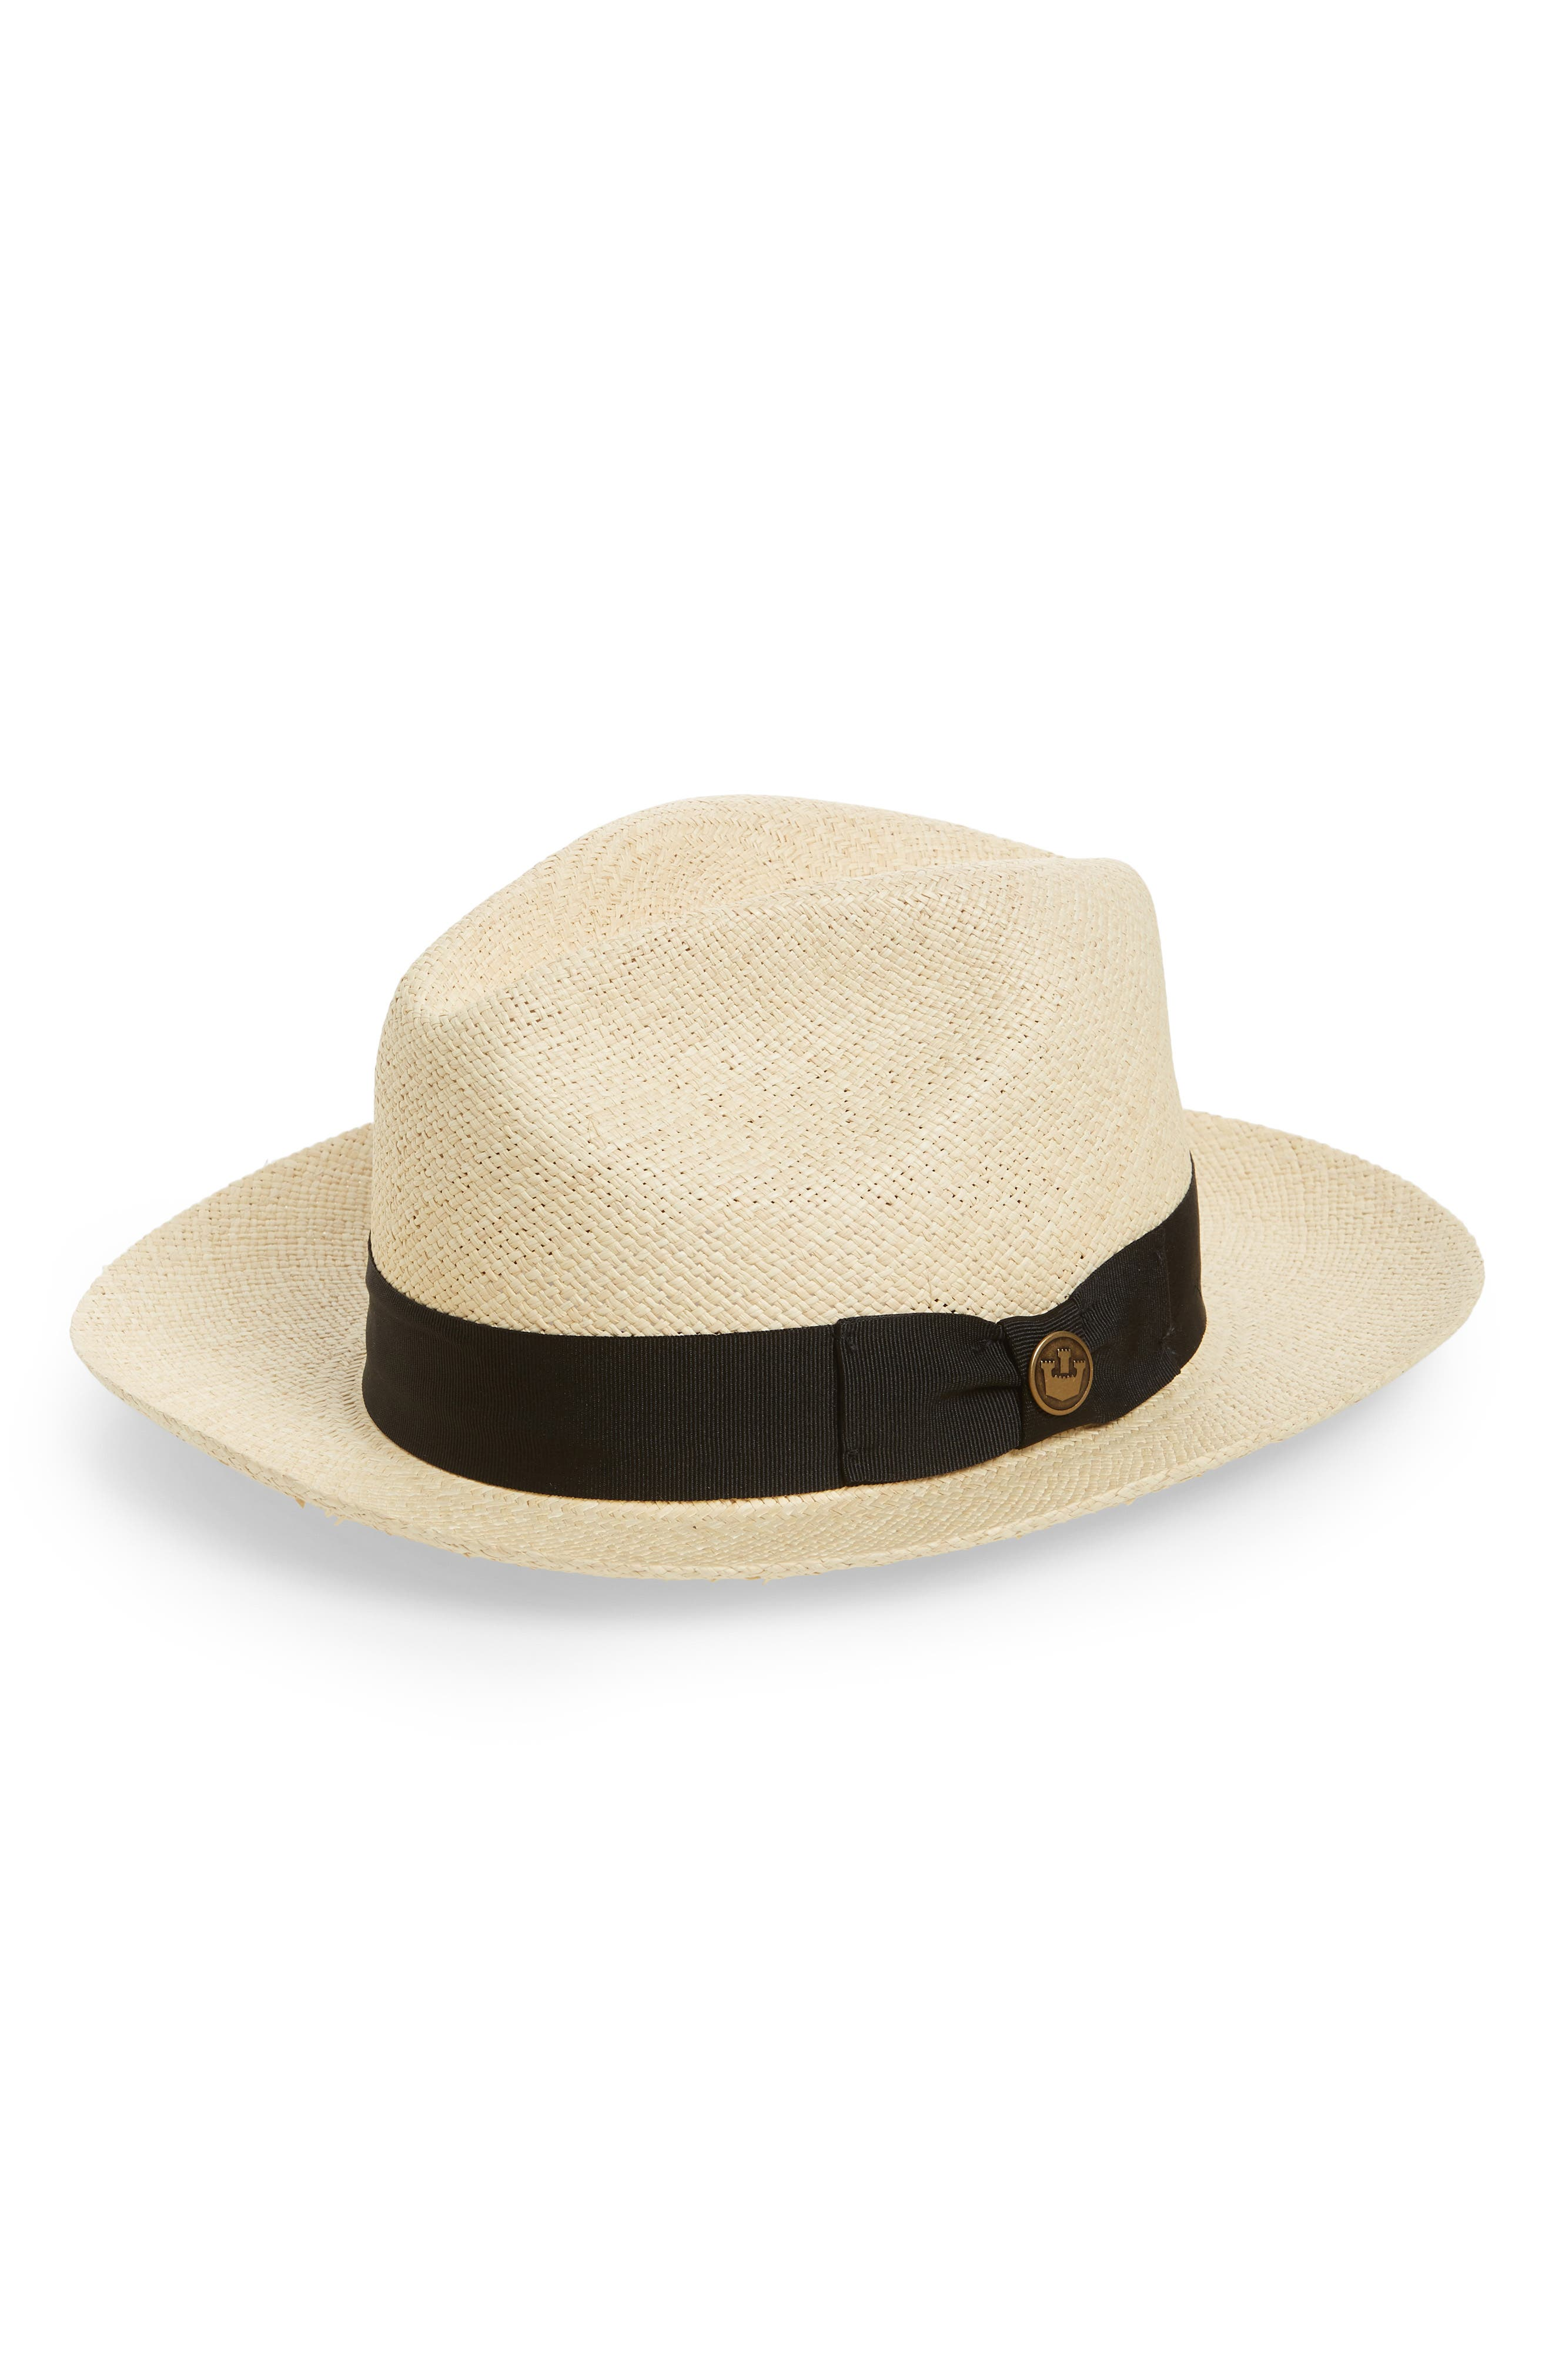 Puerto Lopez Straw Fedora,                         Main,                         color, Natural